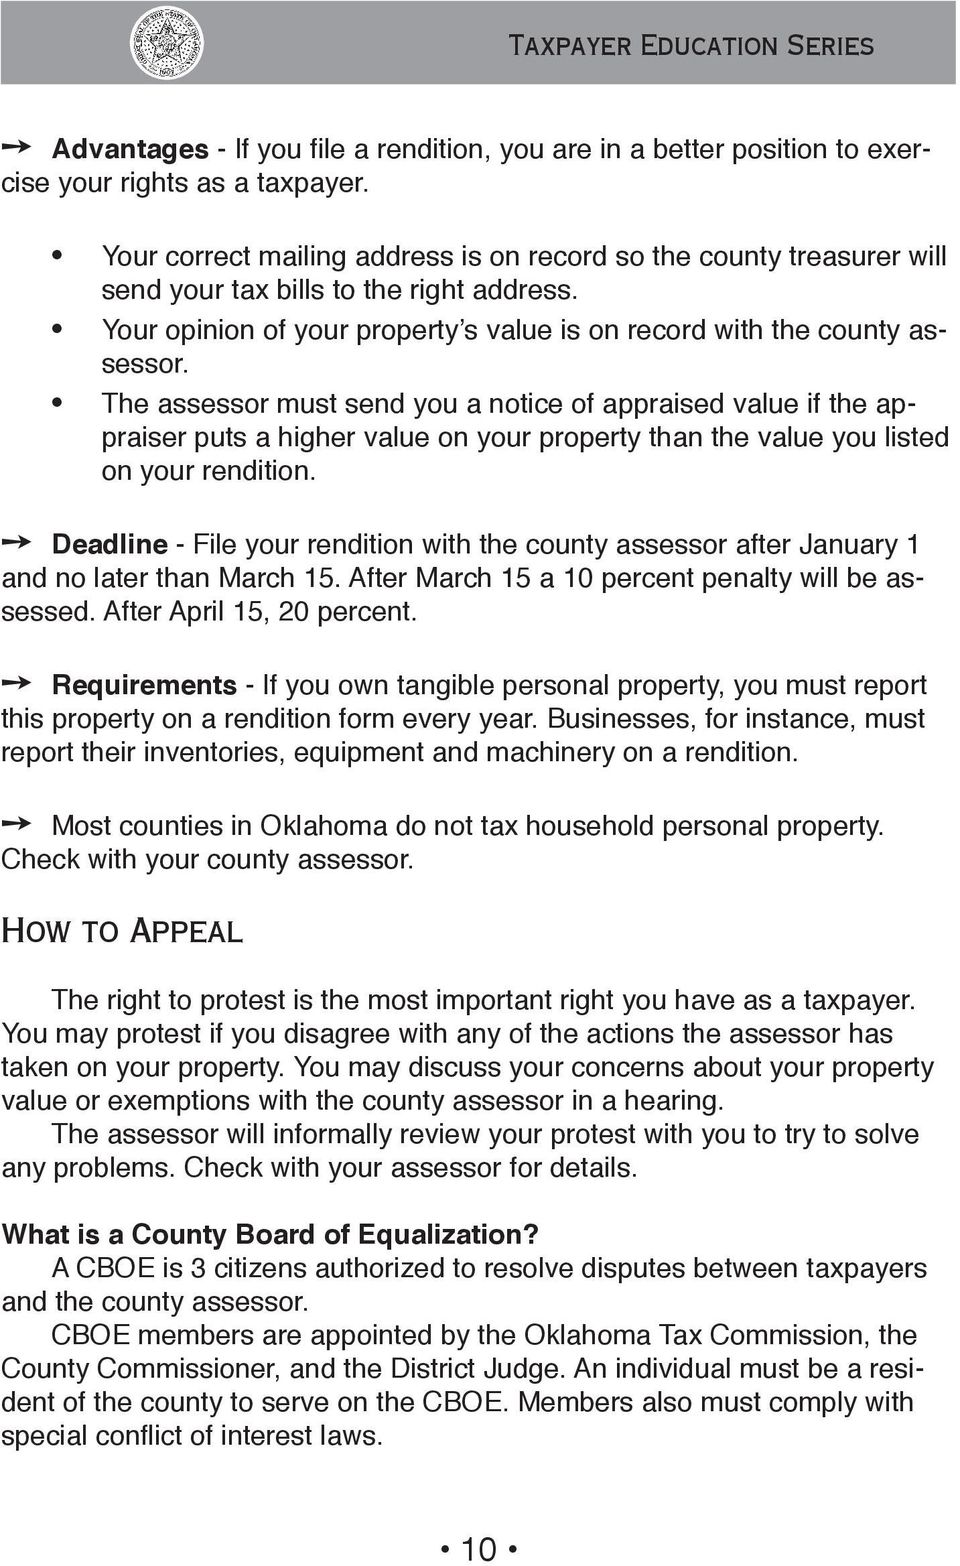 The assessor must send you a notice of appraised value if the appraiser puts a higher value on your property than the value you listed on your rendition.